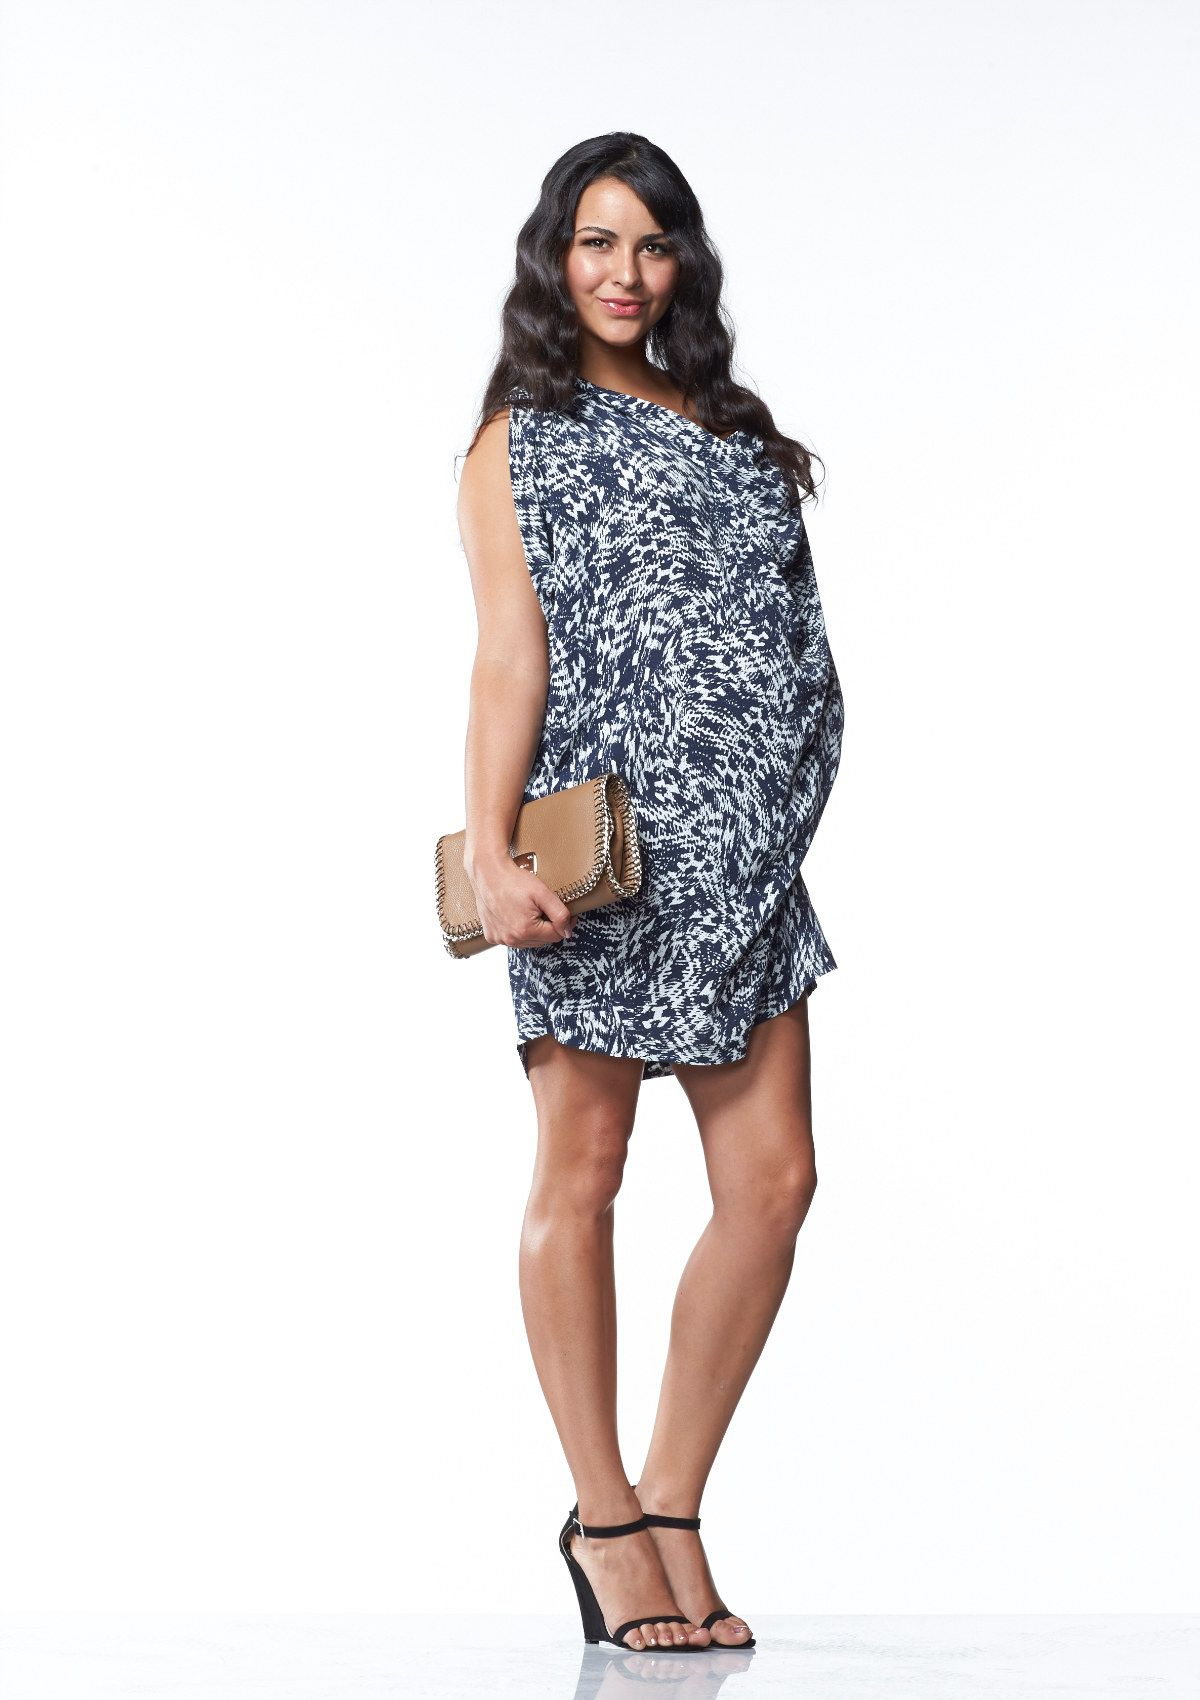 Destiny dress maternity wear maternity clothes online destiny dress maternity wear maternity clothes online australia soon maternity ombrellifo Image collections